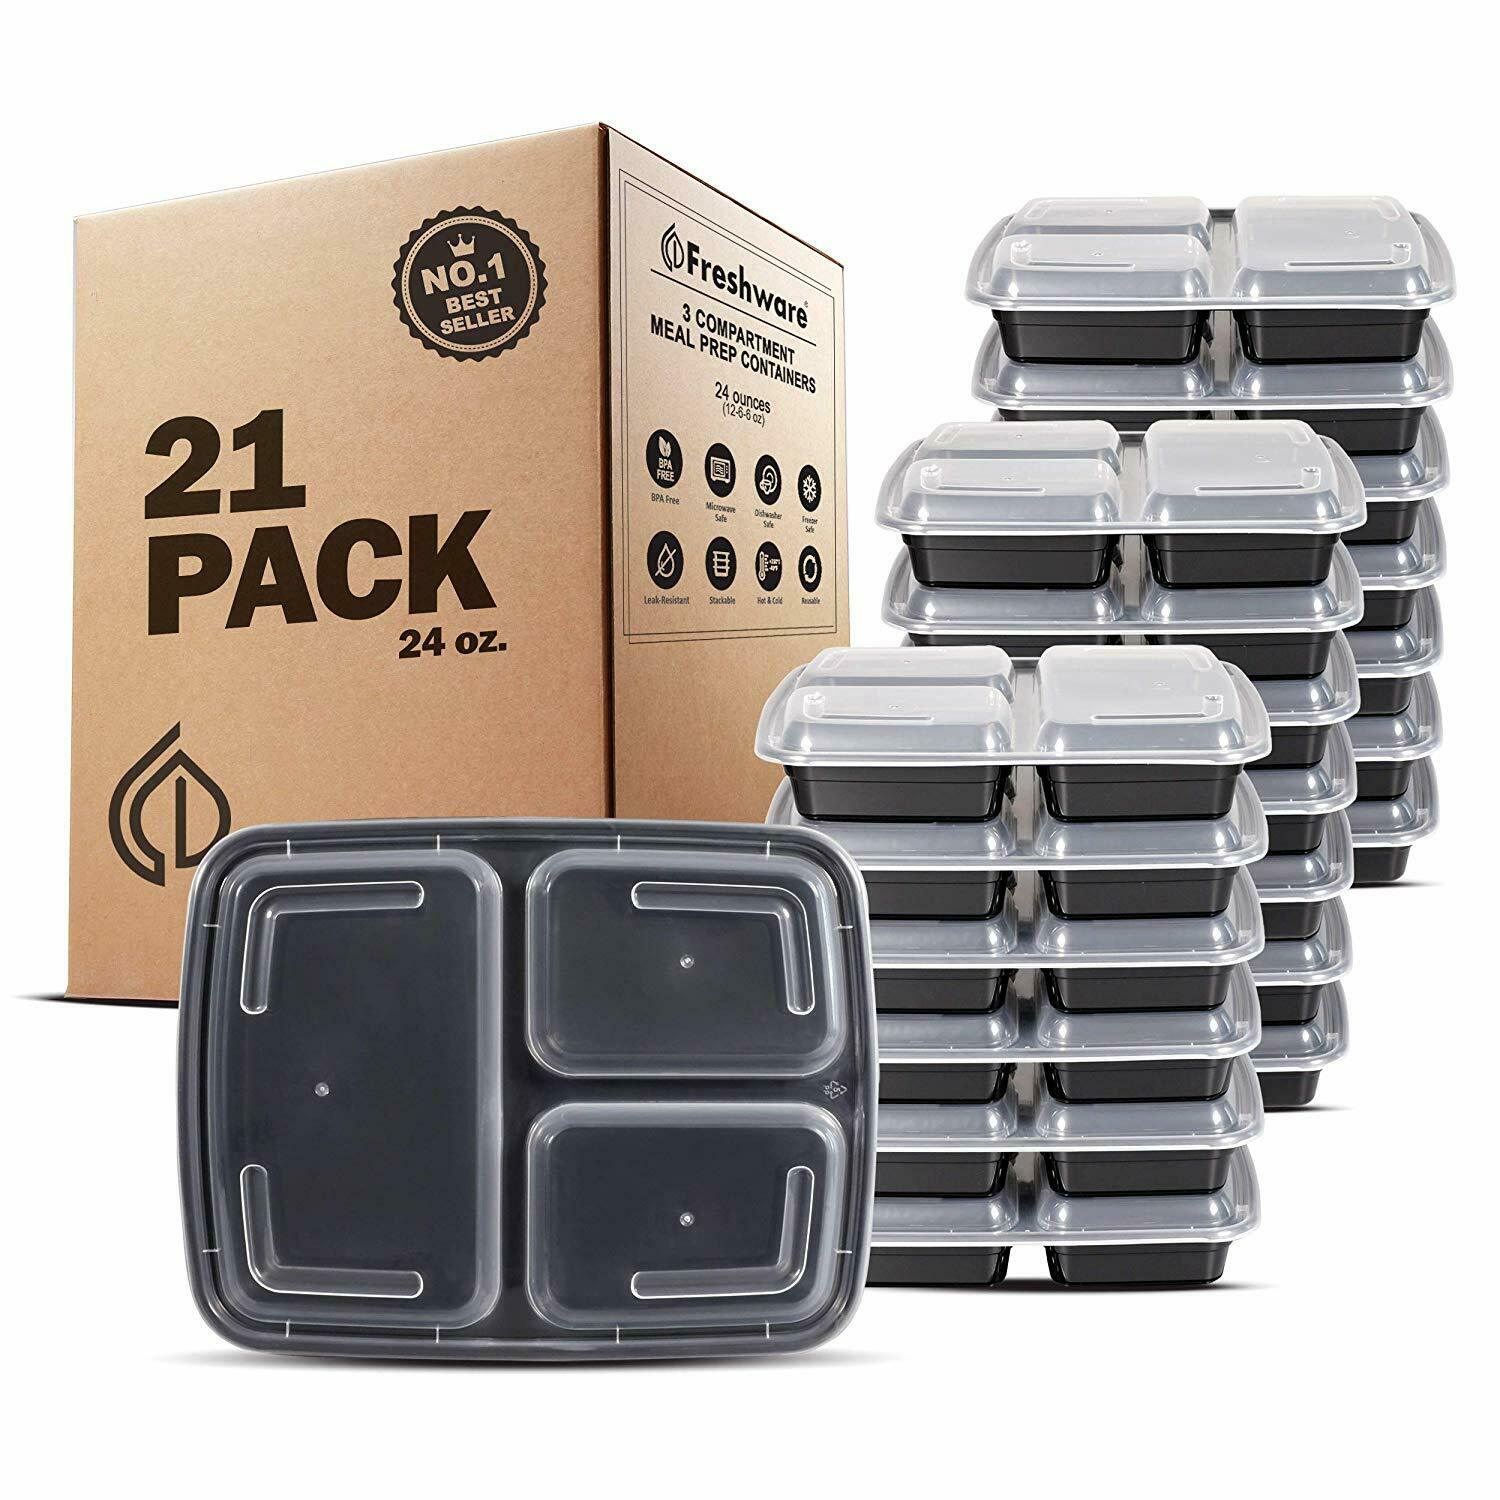 MEAL PREP CONTAINERS Microwave Safe 3 Compartment Reusable Food Storage 21PACK 1